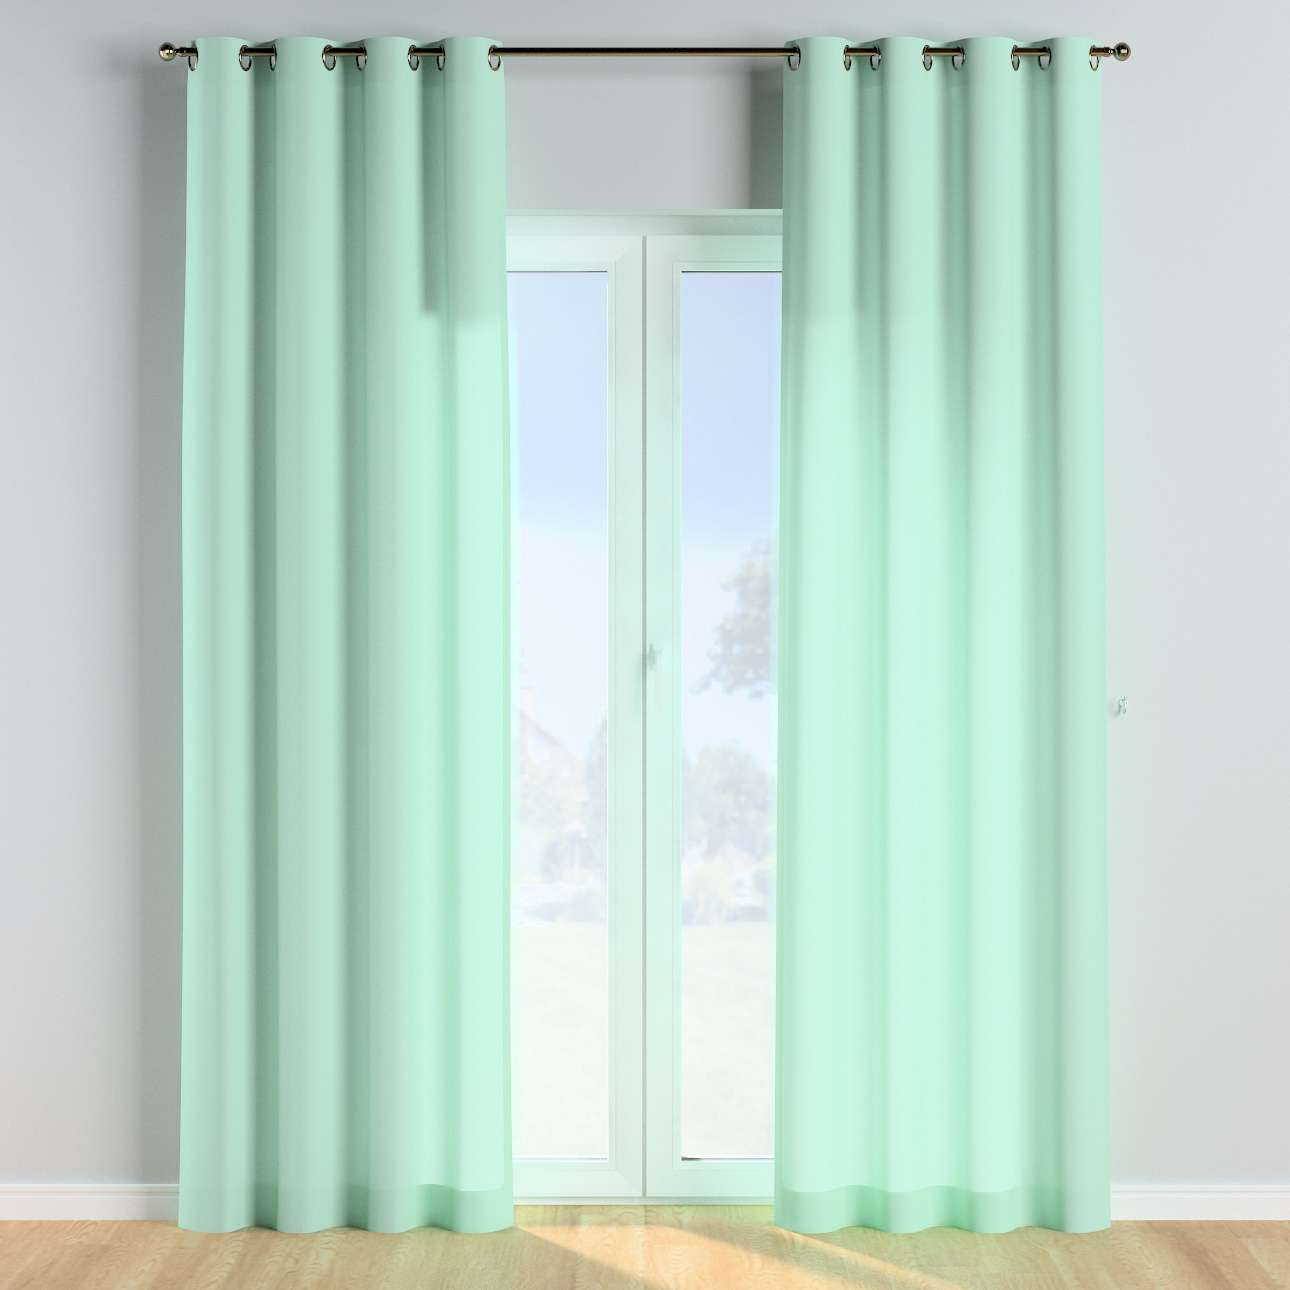 Eyelet curtains in collection Happiness, fabric: 133-37